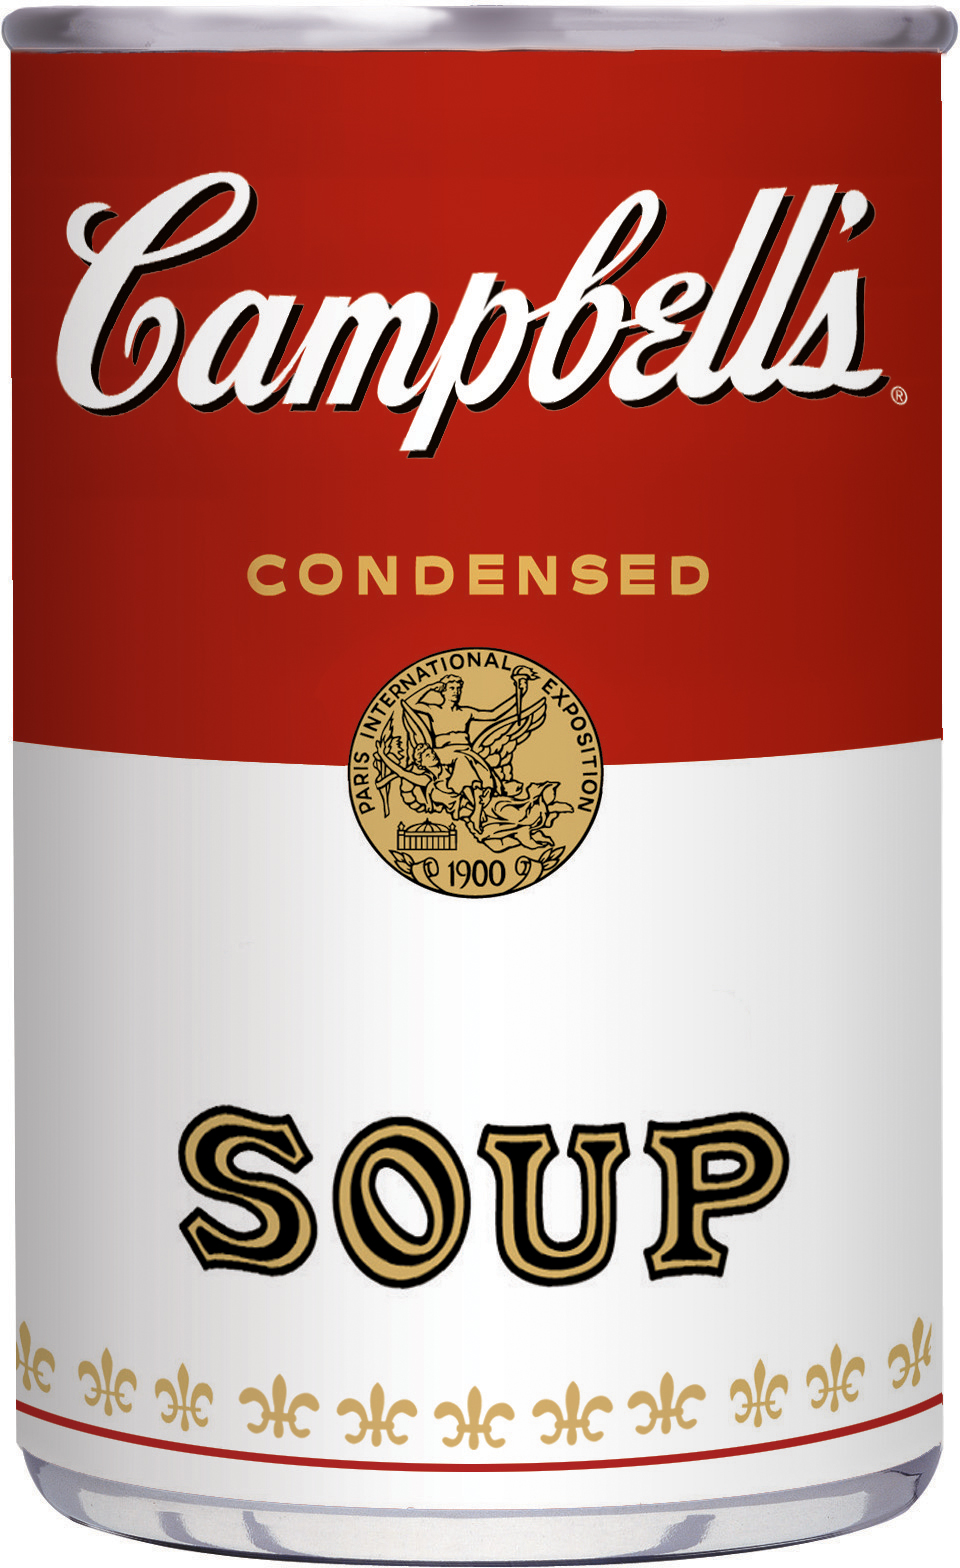 Chicken Soup clipart tomato soup Explore com/school/HTML/Campbell's%20Labels more! mygoodshepherd Chicken